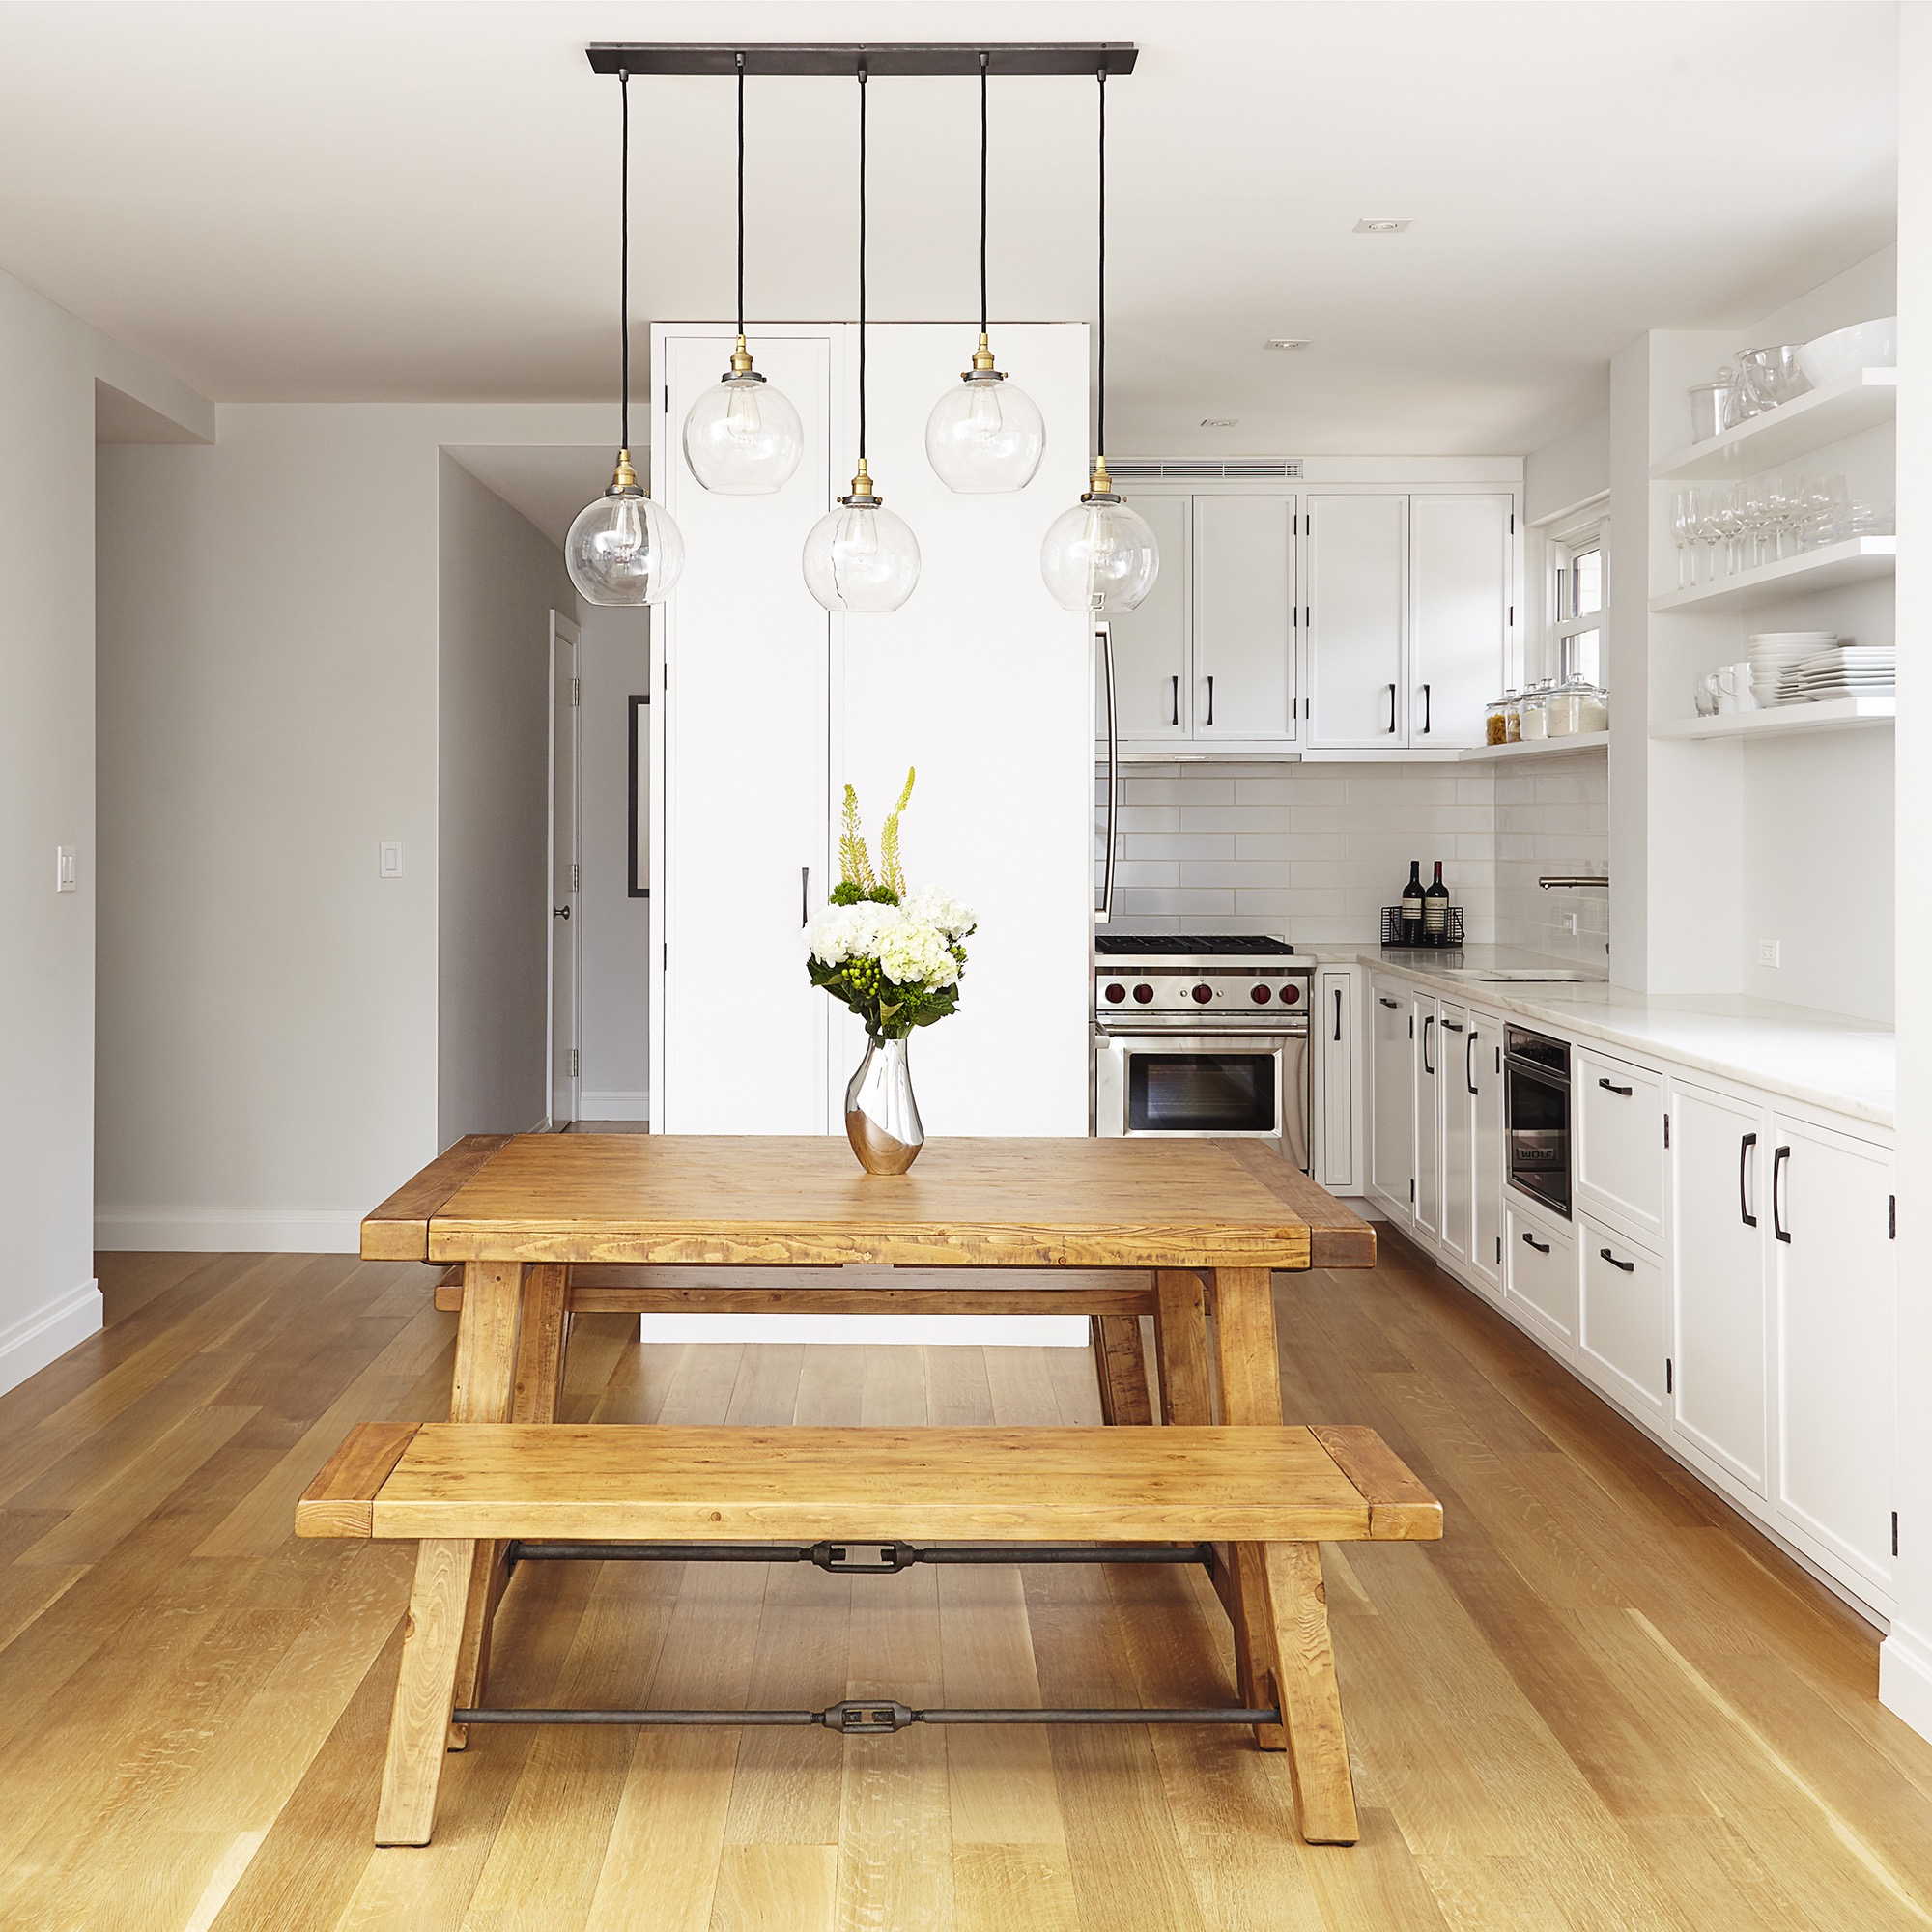 Globe Hanging Light Fixture For Modern Kitchen (Image 13 of 20)